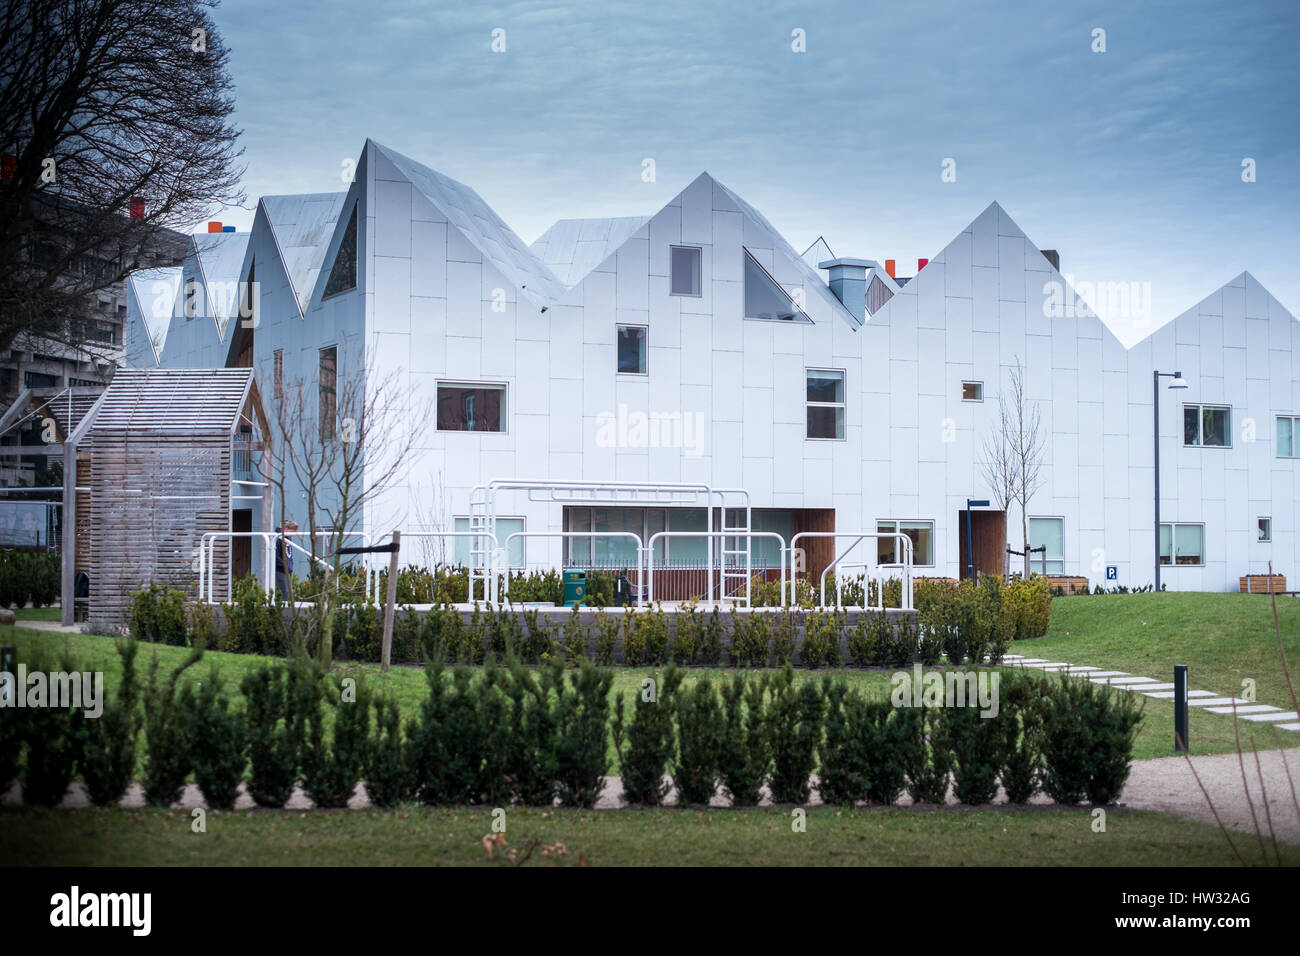 The distinctive gable ends of Nord architect's healthcare centre for cancer care in Nørrebro, Copenhagen, - Stock Image